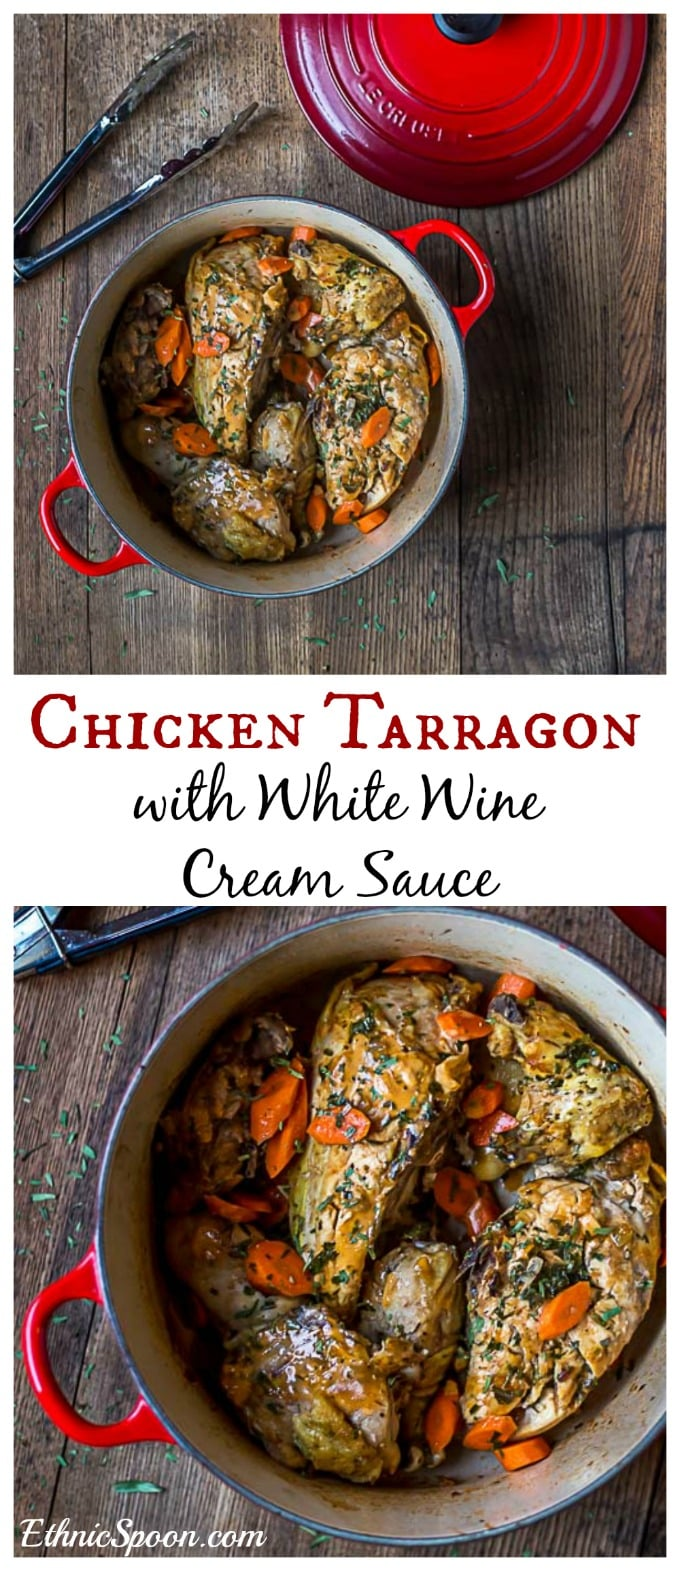 A classic French dish with a whole roaster chicken and a creamy white wine sauce. | ethnicspoon.com #tarragonchicken #frenchchicken #roastedchicken